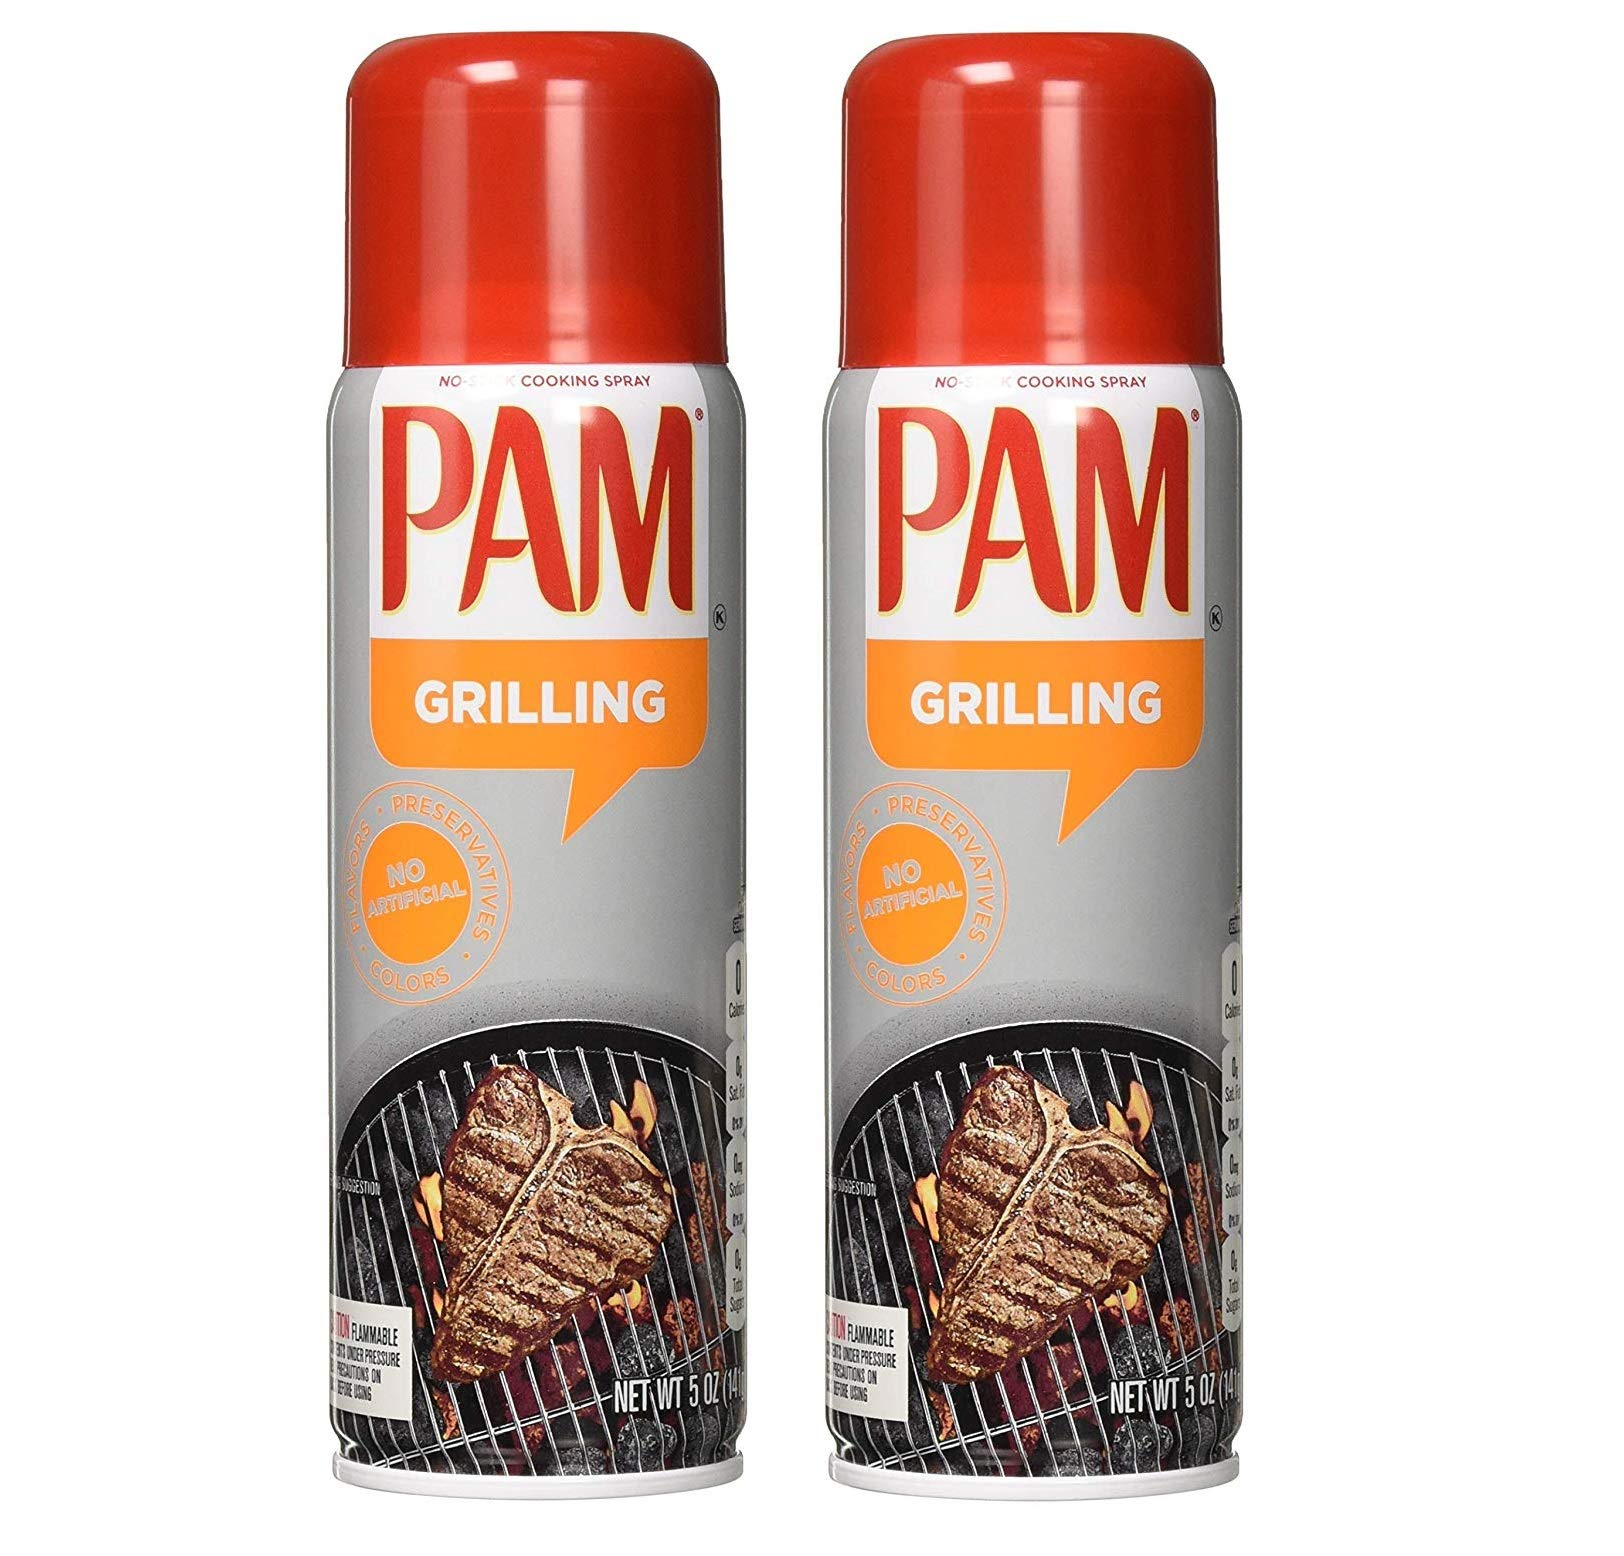 Pam No-Stick Cooking Spray - Grill - For High Temperature - Net Wt. 5 OZ (141 g) Each - Pack of 2 by Pam